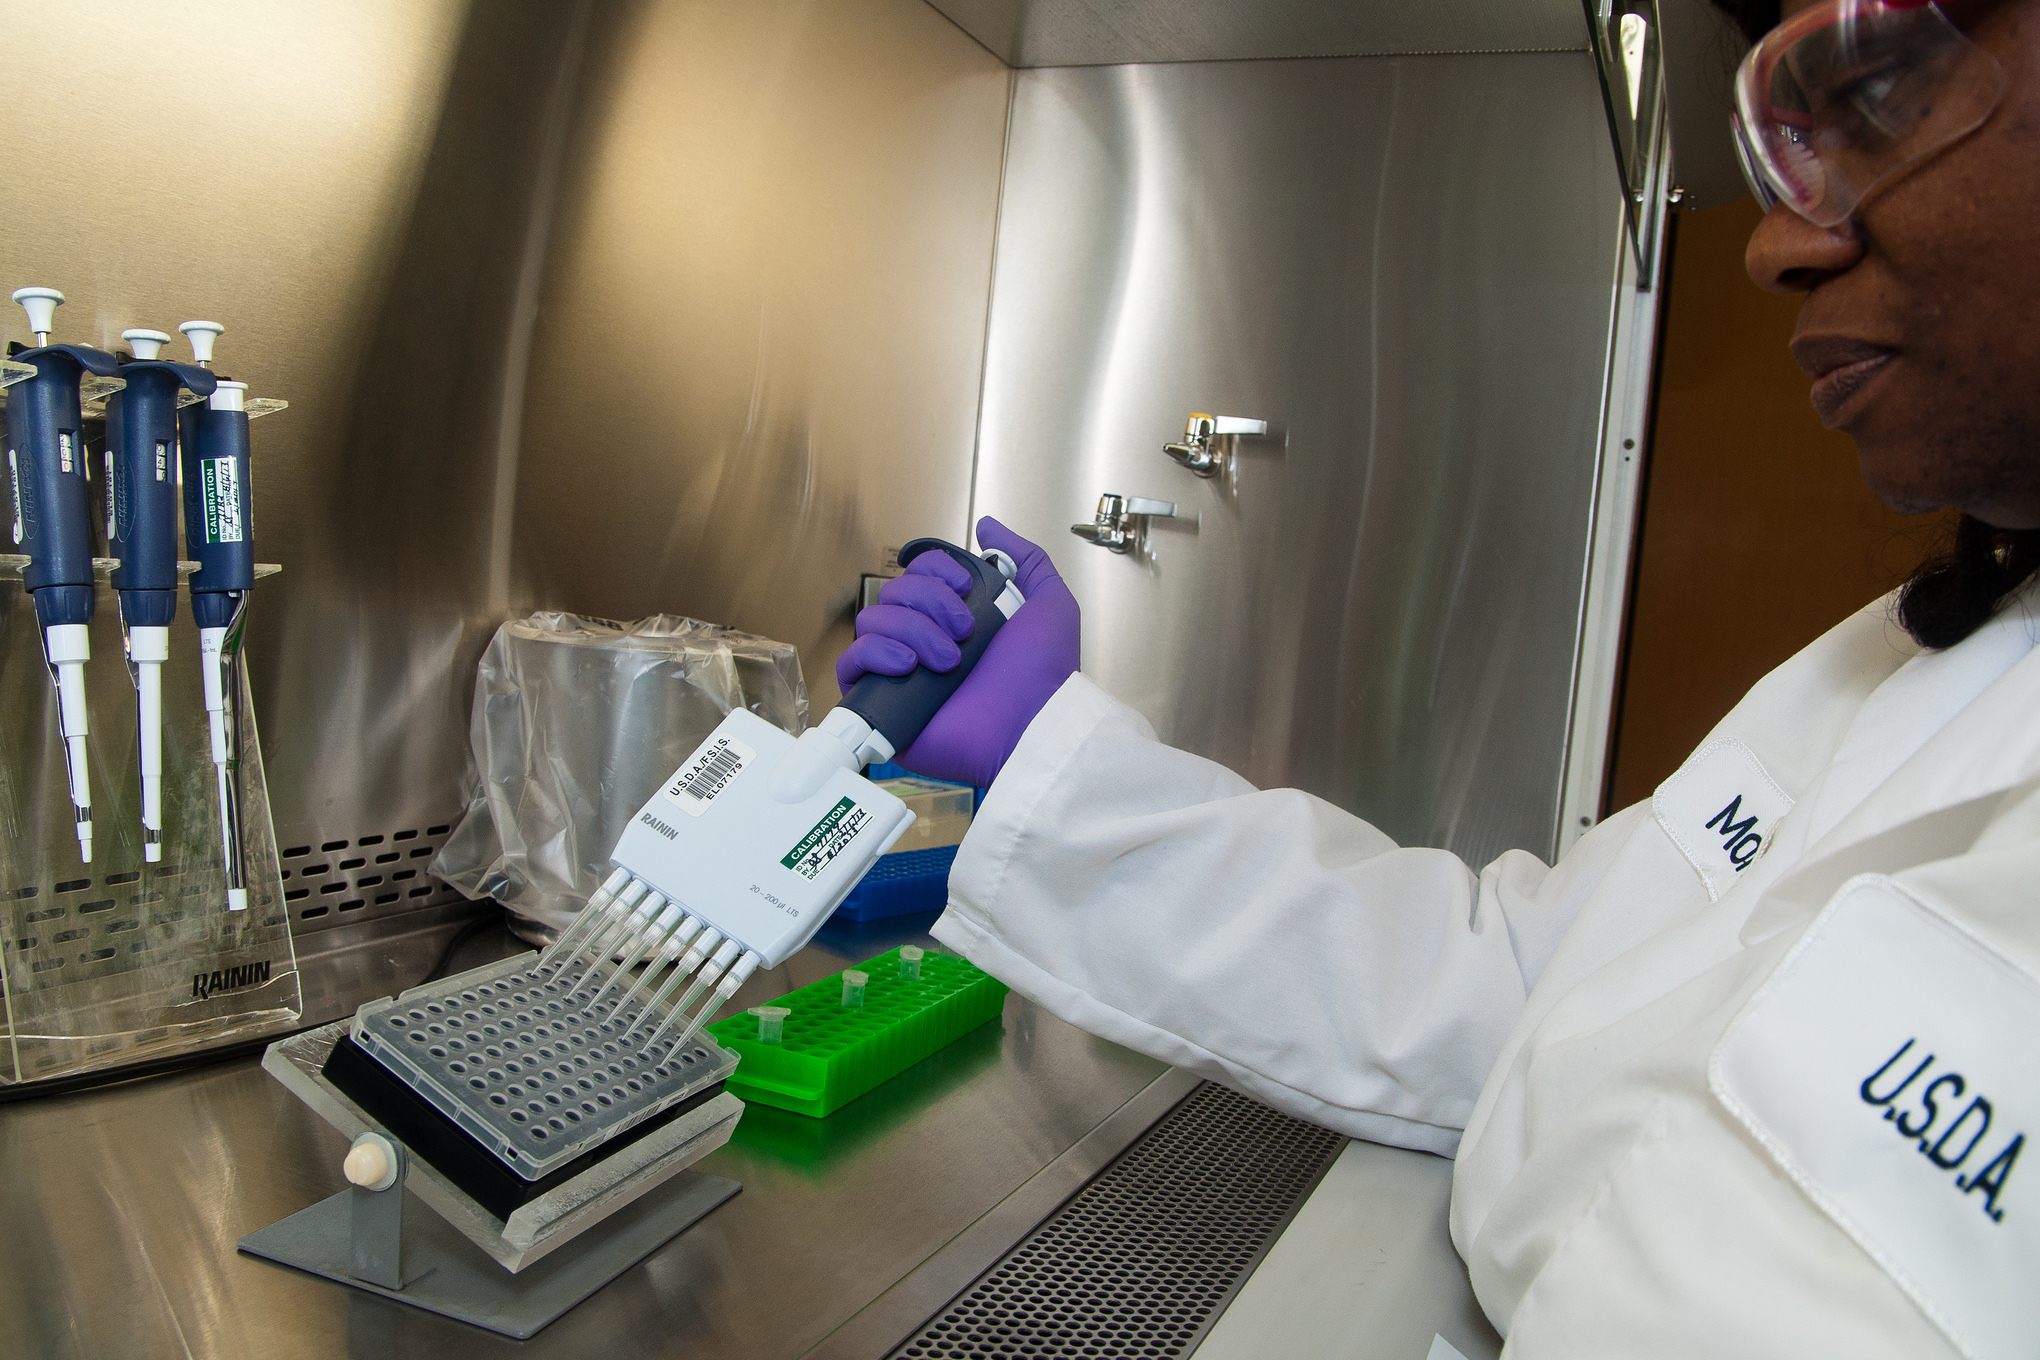 A USDA microbiologist adds reagents to test for E. coli in Athens, Georgia.